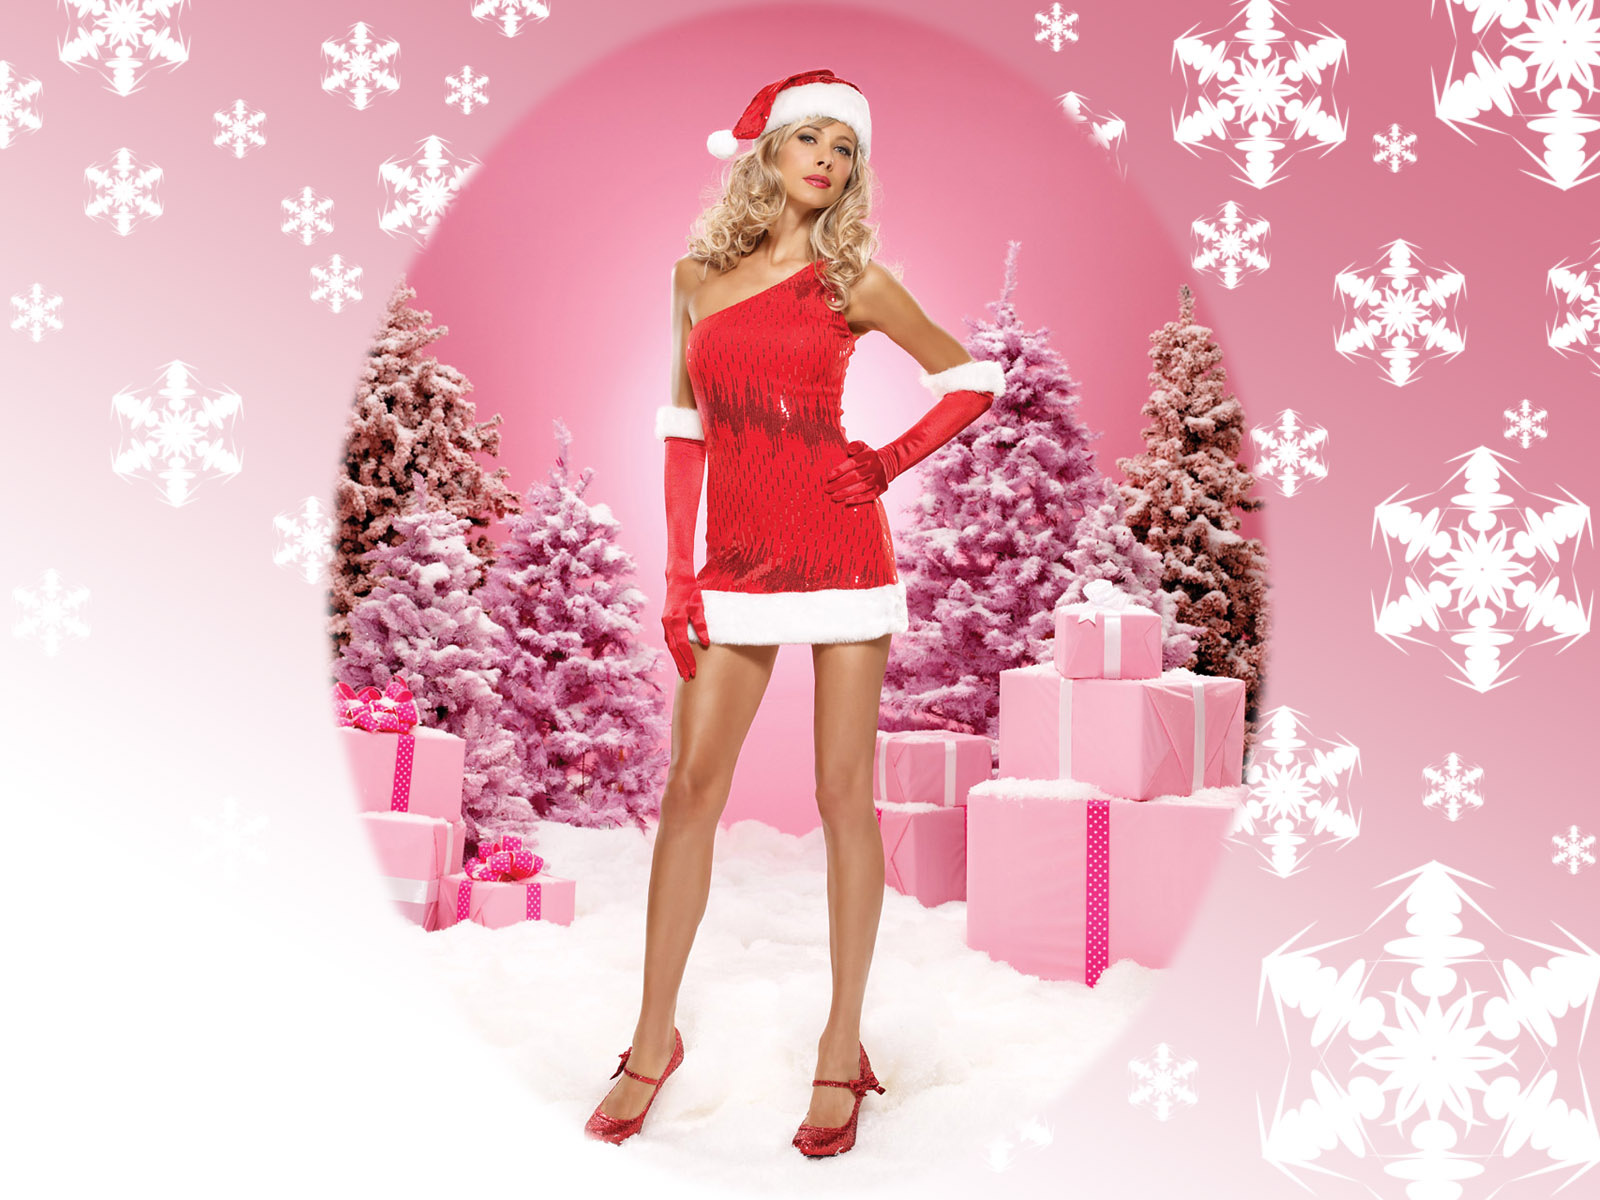 wallpapers chicas santa